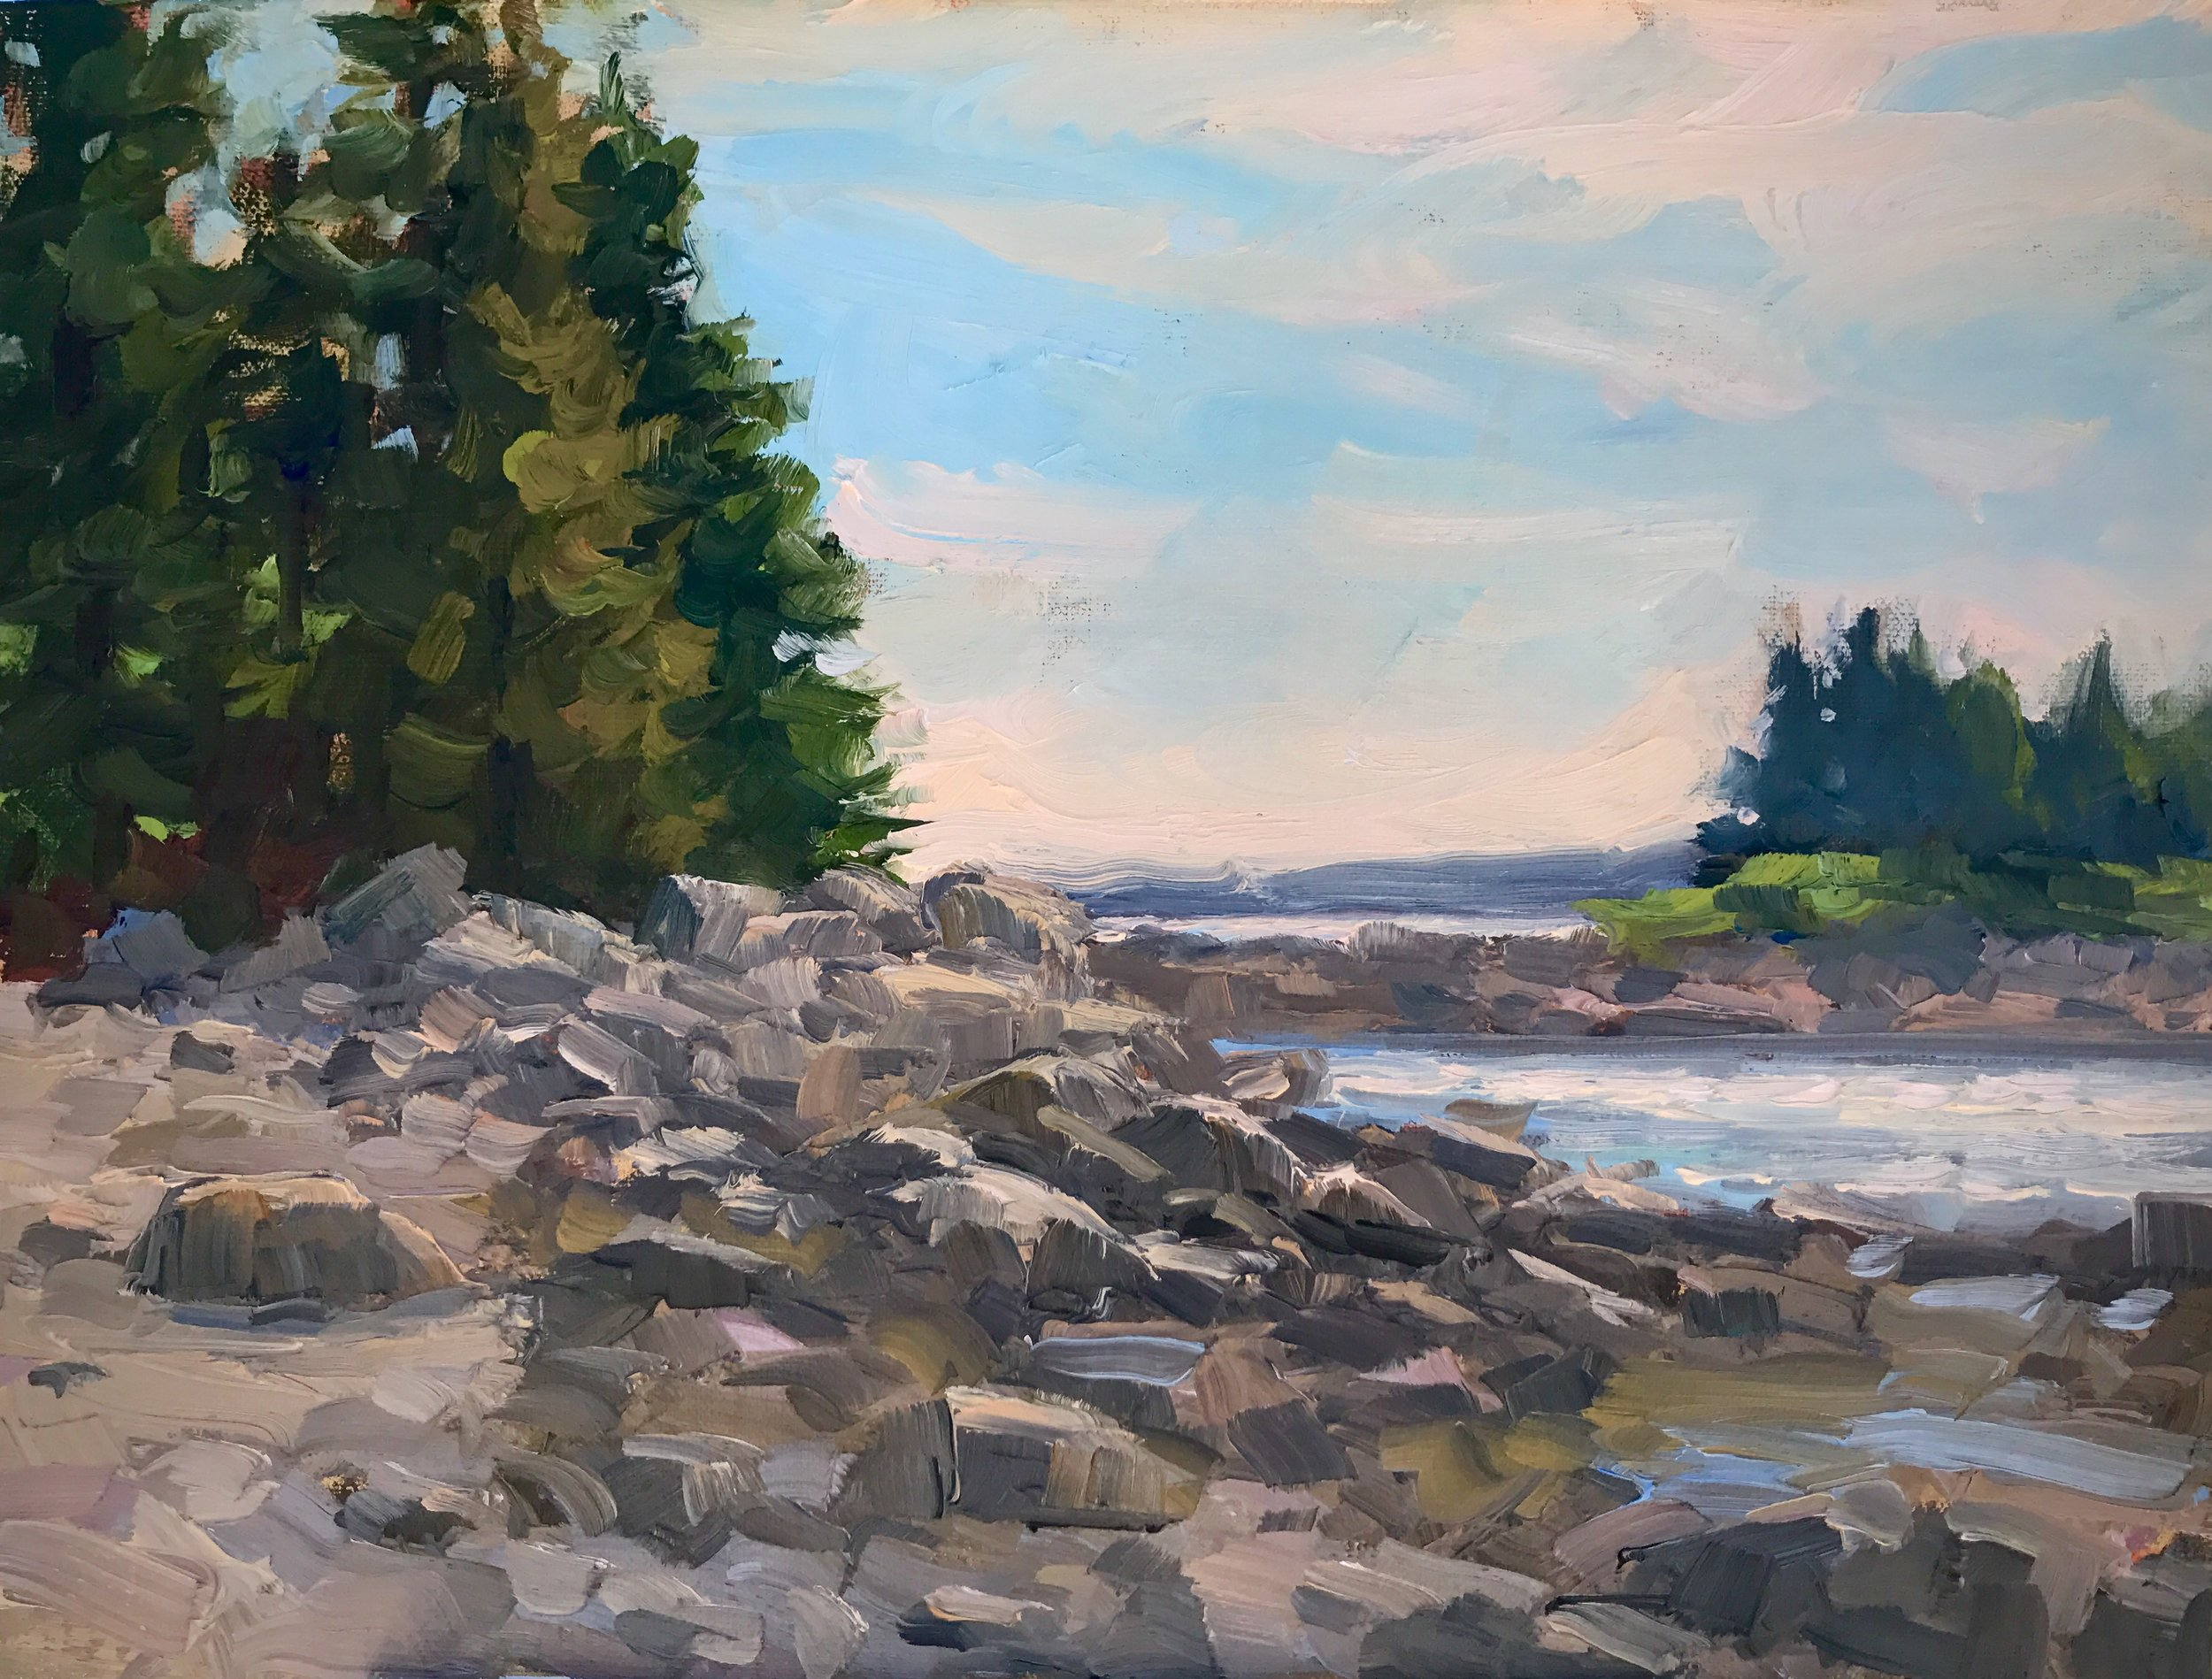 Lane's Island Study, Oil on linen, 9x12""